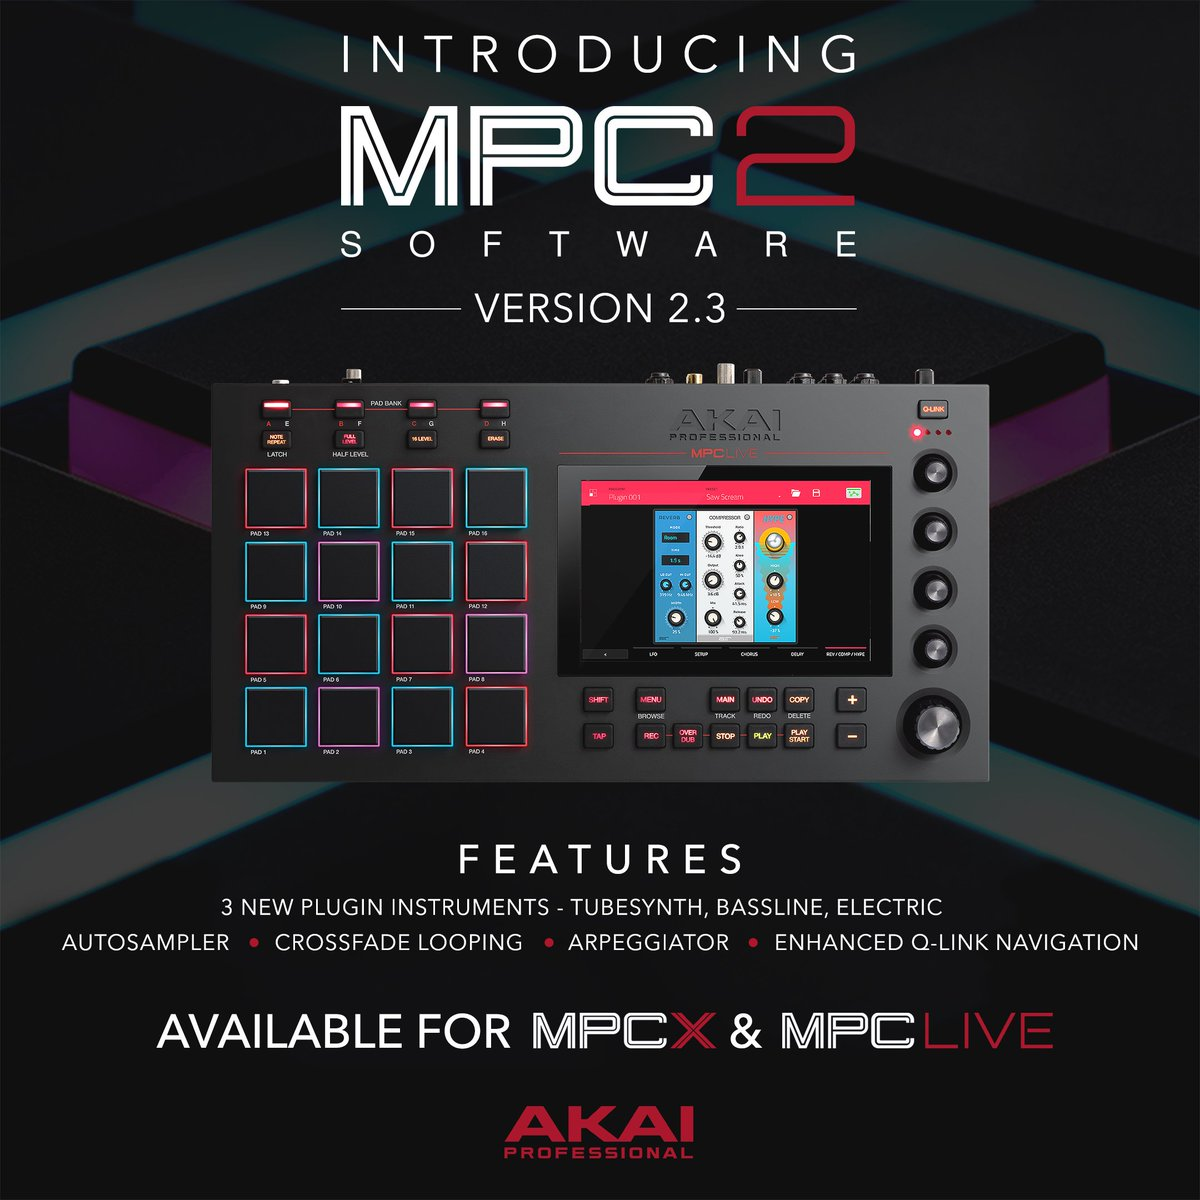 Akai Professional on Twitter: